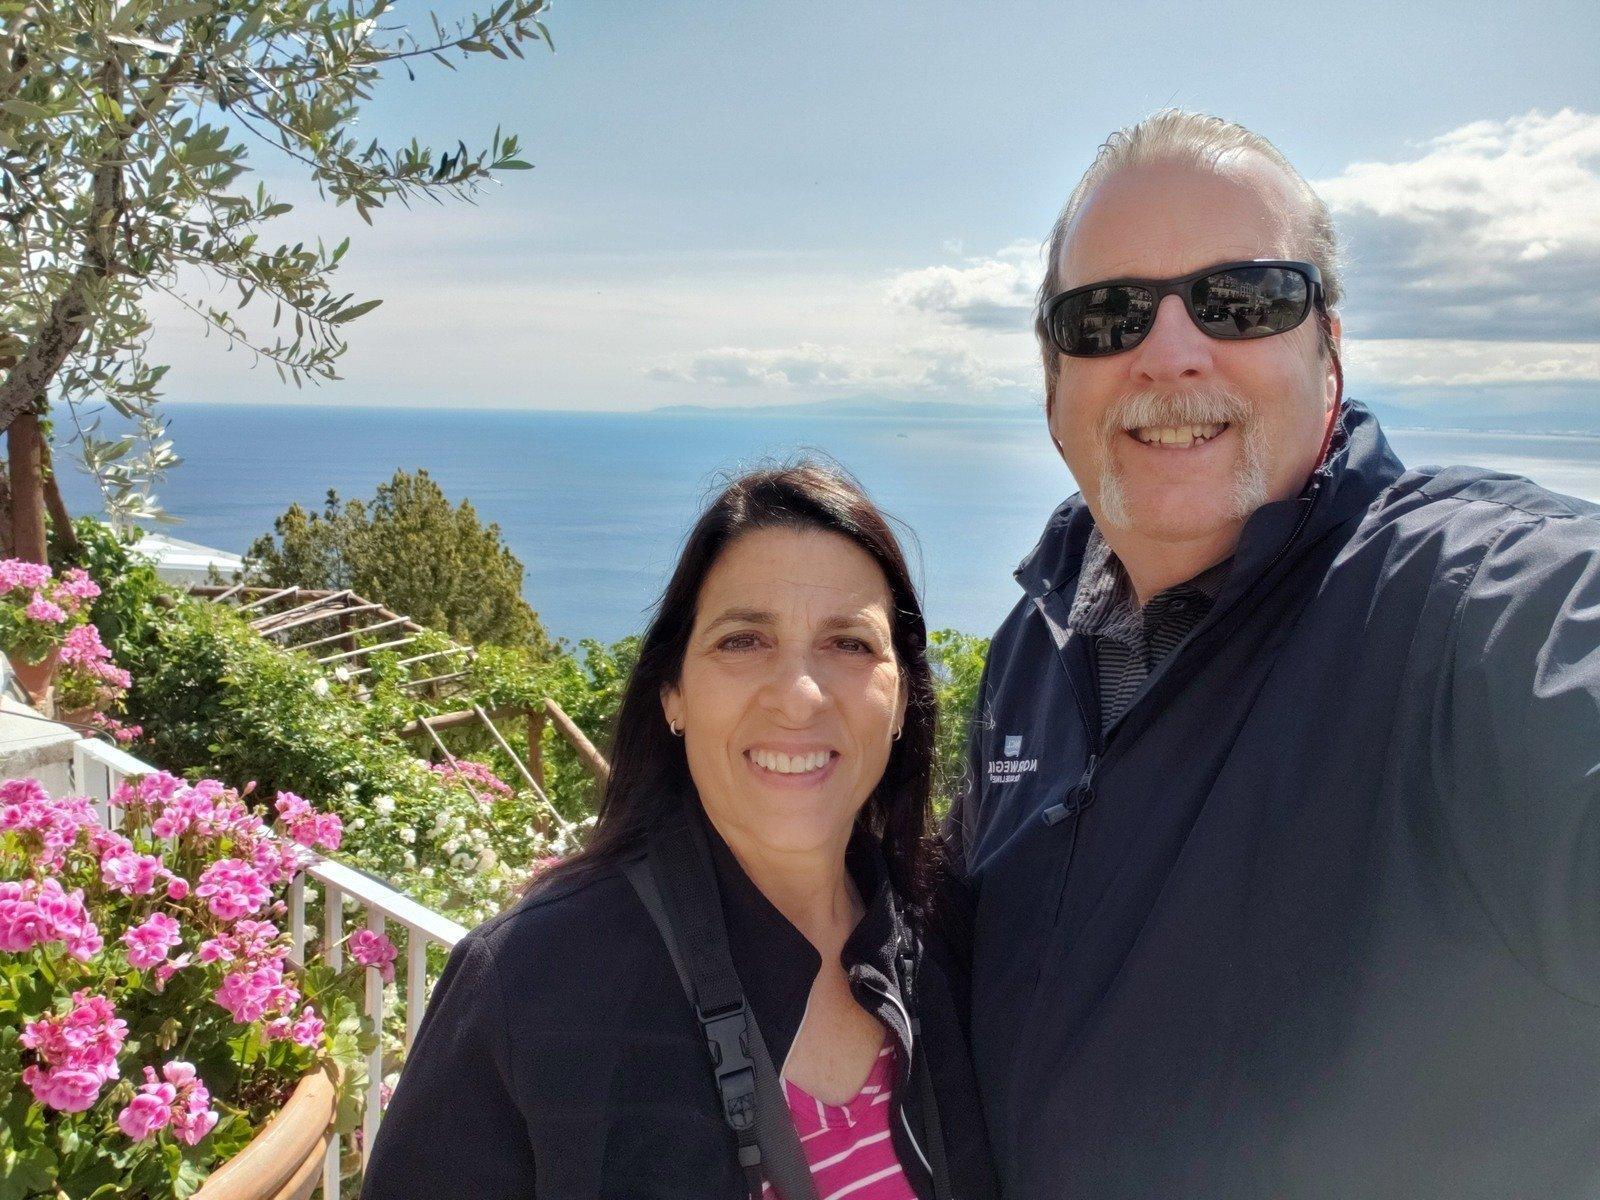 Deb and Mike Amalfi Coast